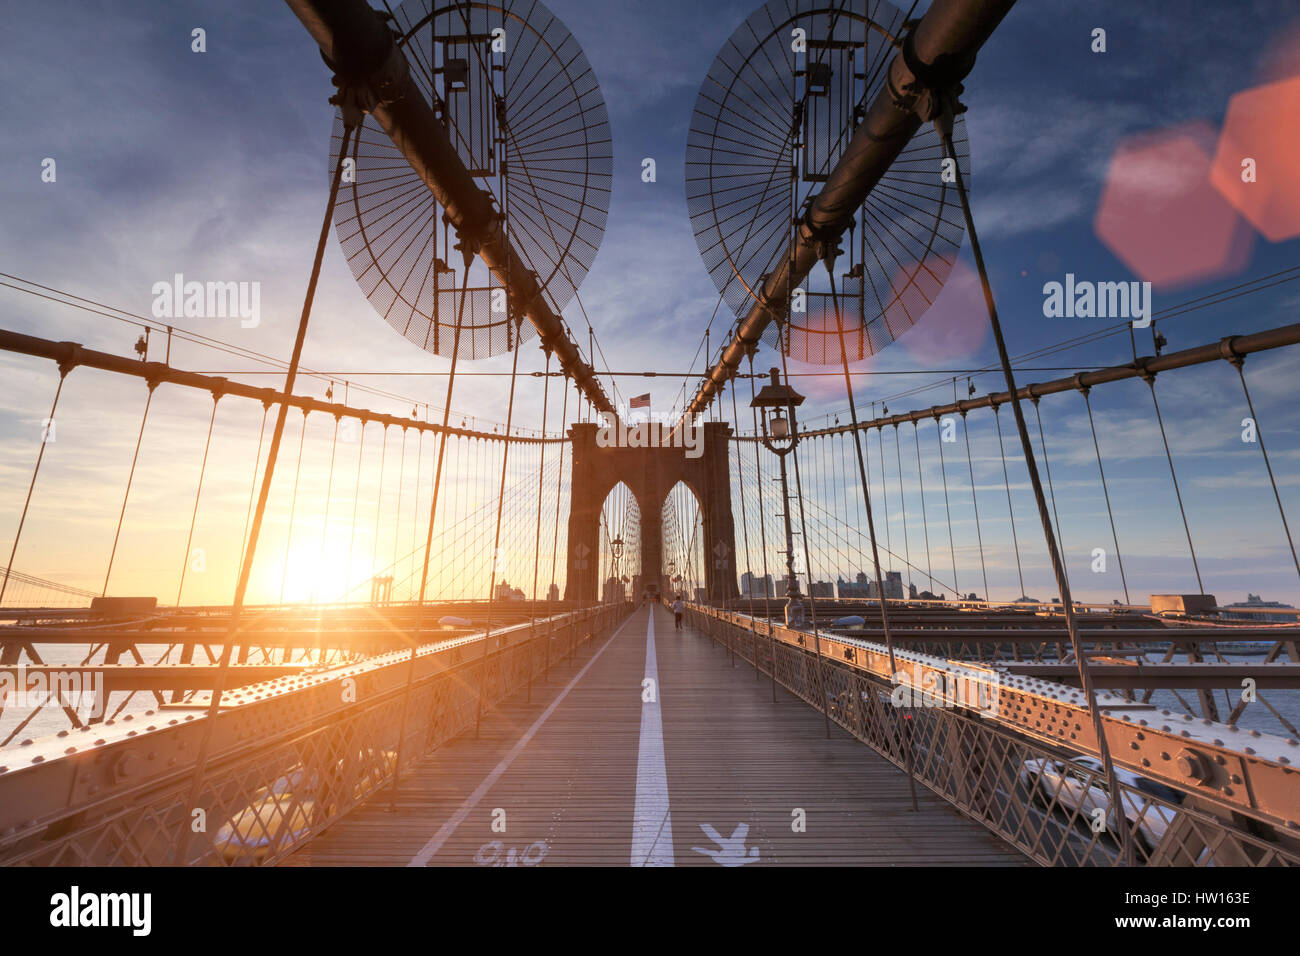 USA, New York, New York City, Brooklyn Bridge Photo Stock